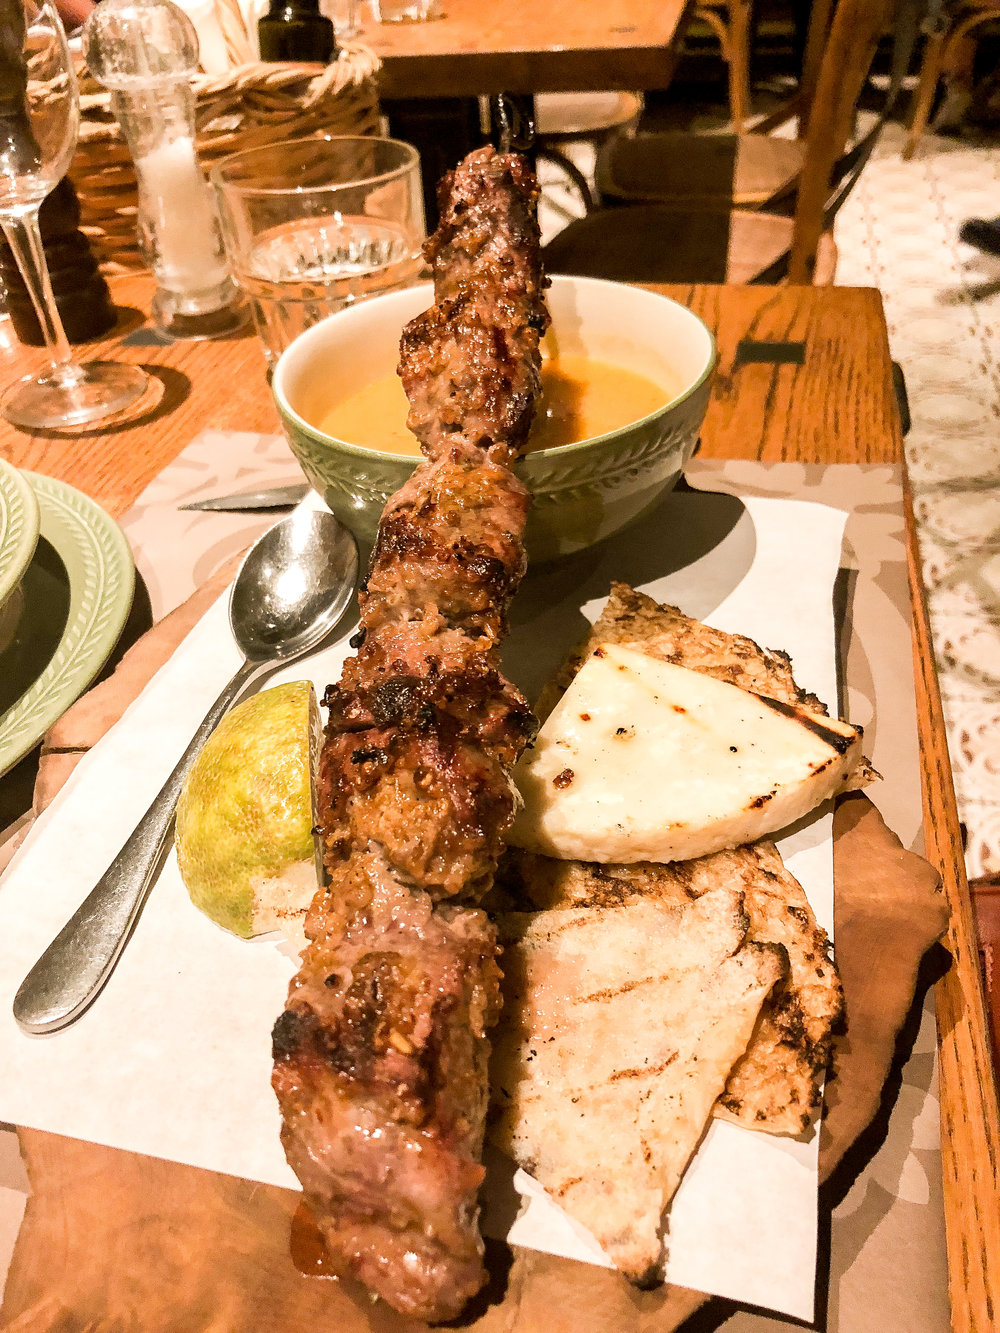 My dinner of lamb on a skewer with rustic pita and a blended vegetable soup. I was dipping the meat in the soup like Michael Scott dips meat in wine!